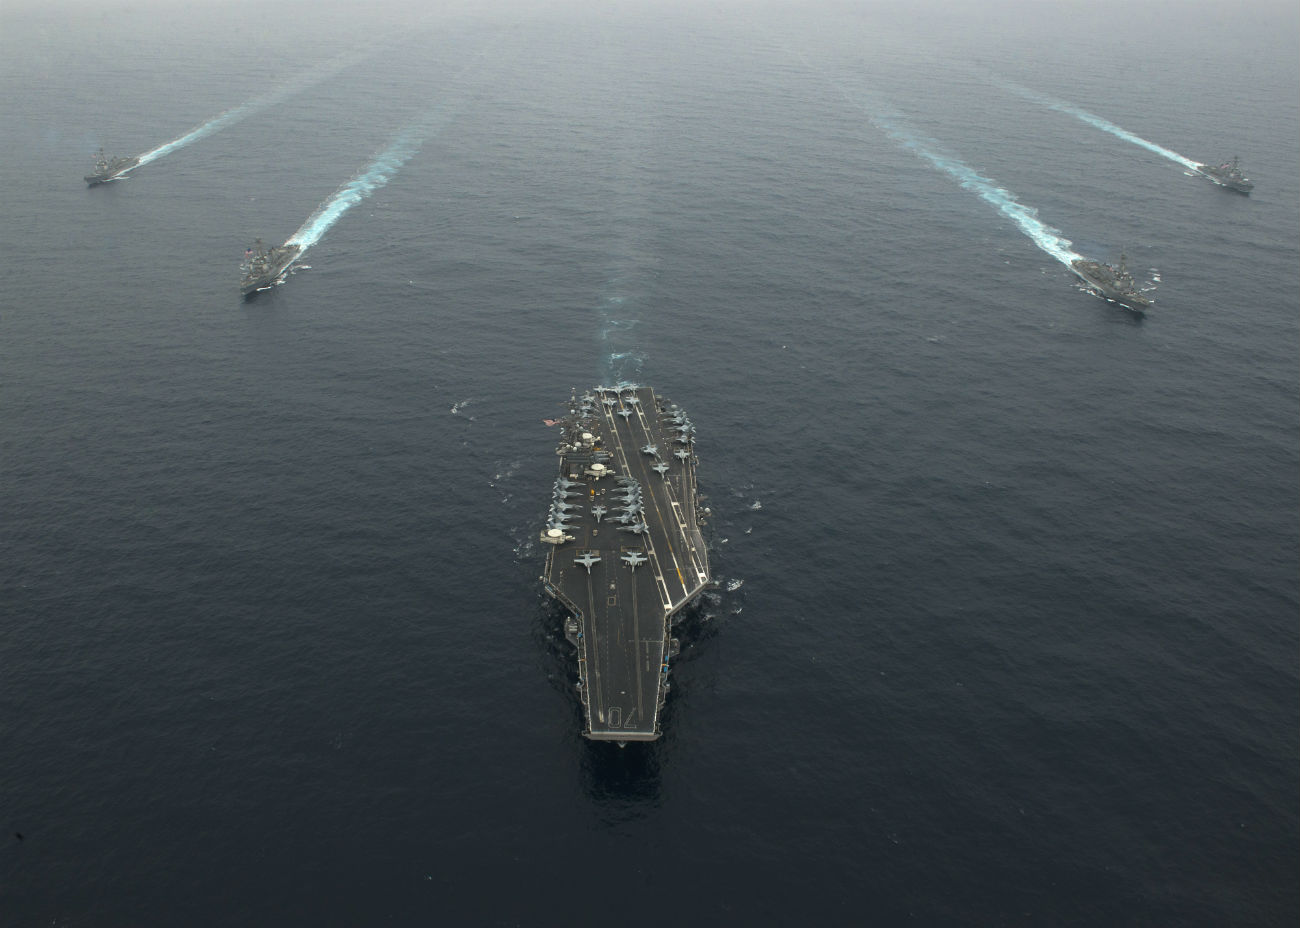 Aircraft carrier in formation